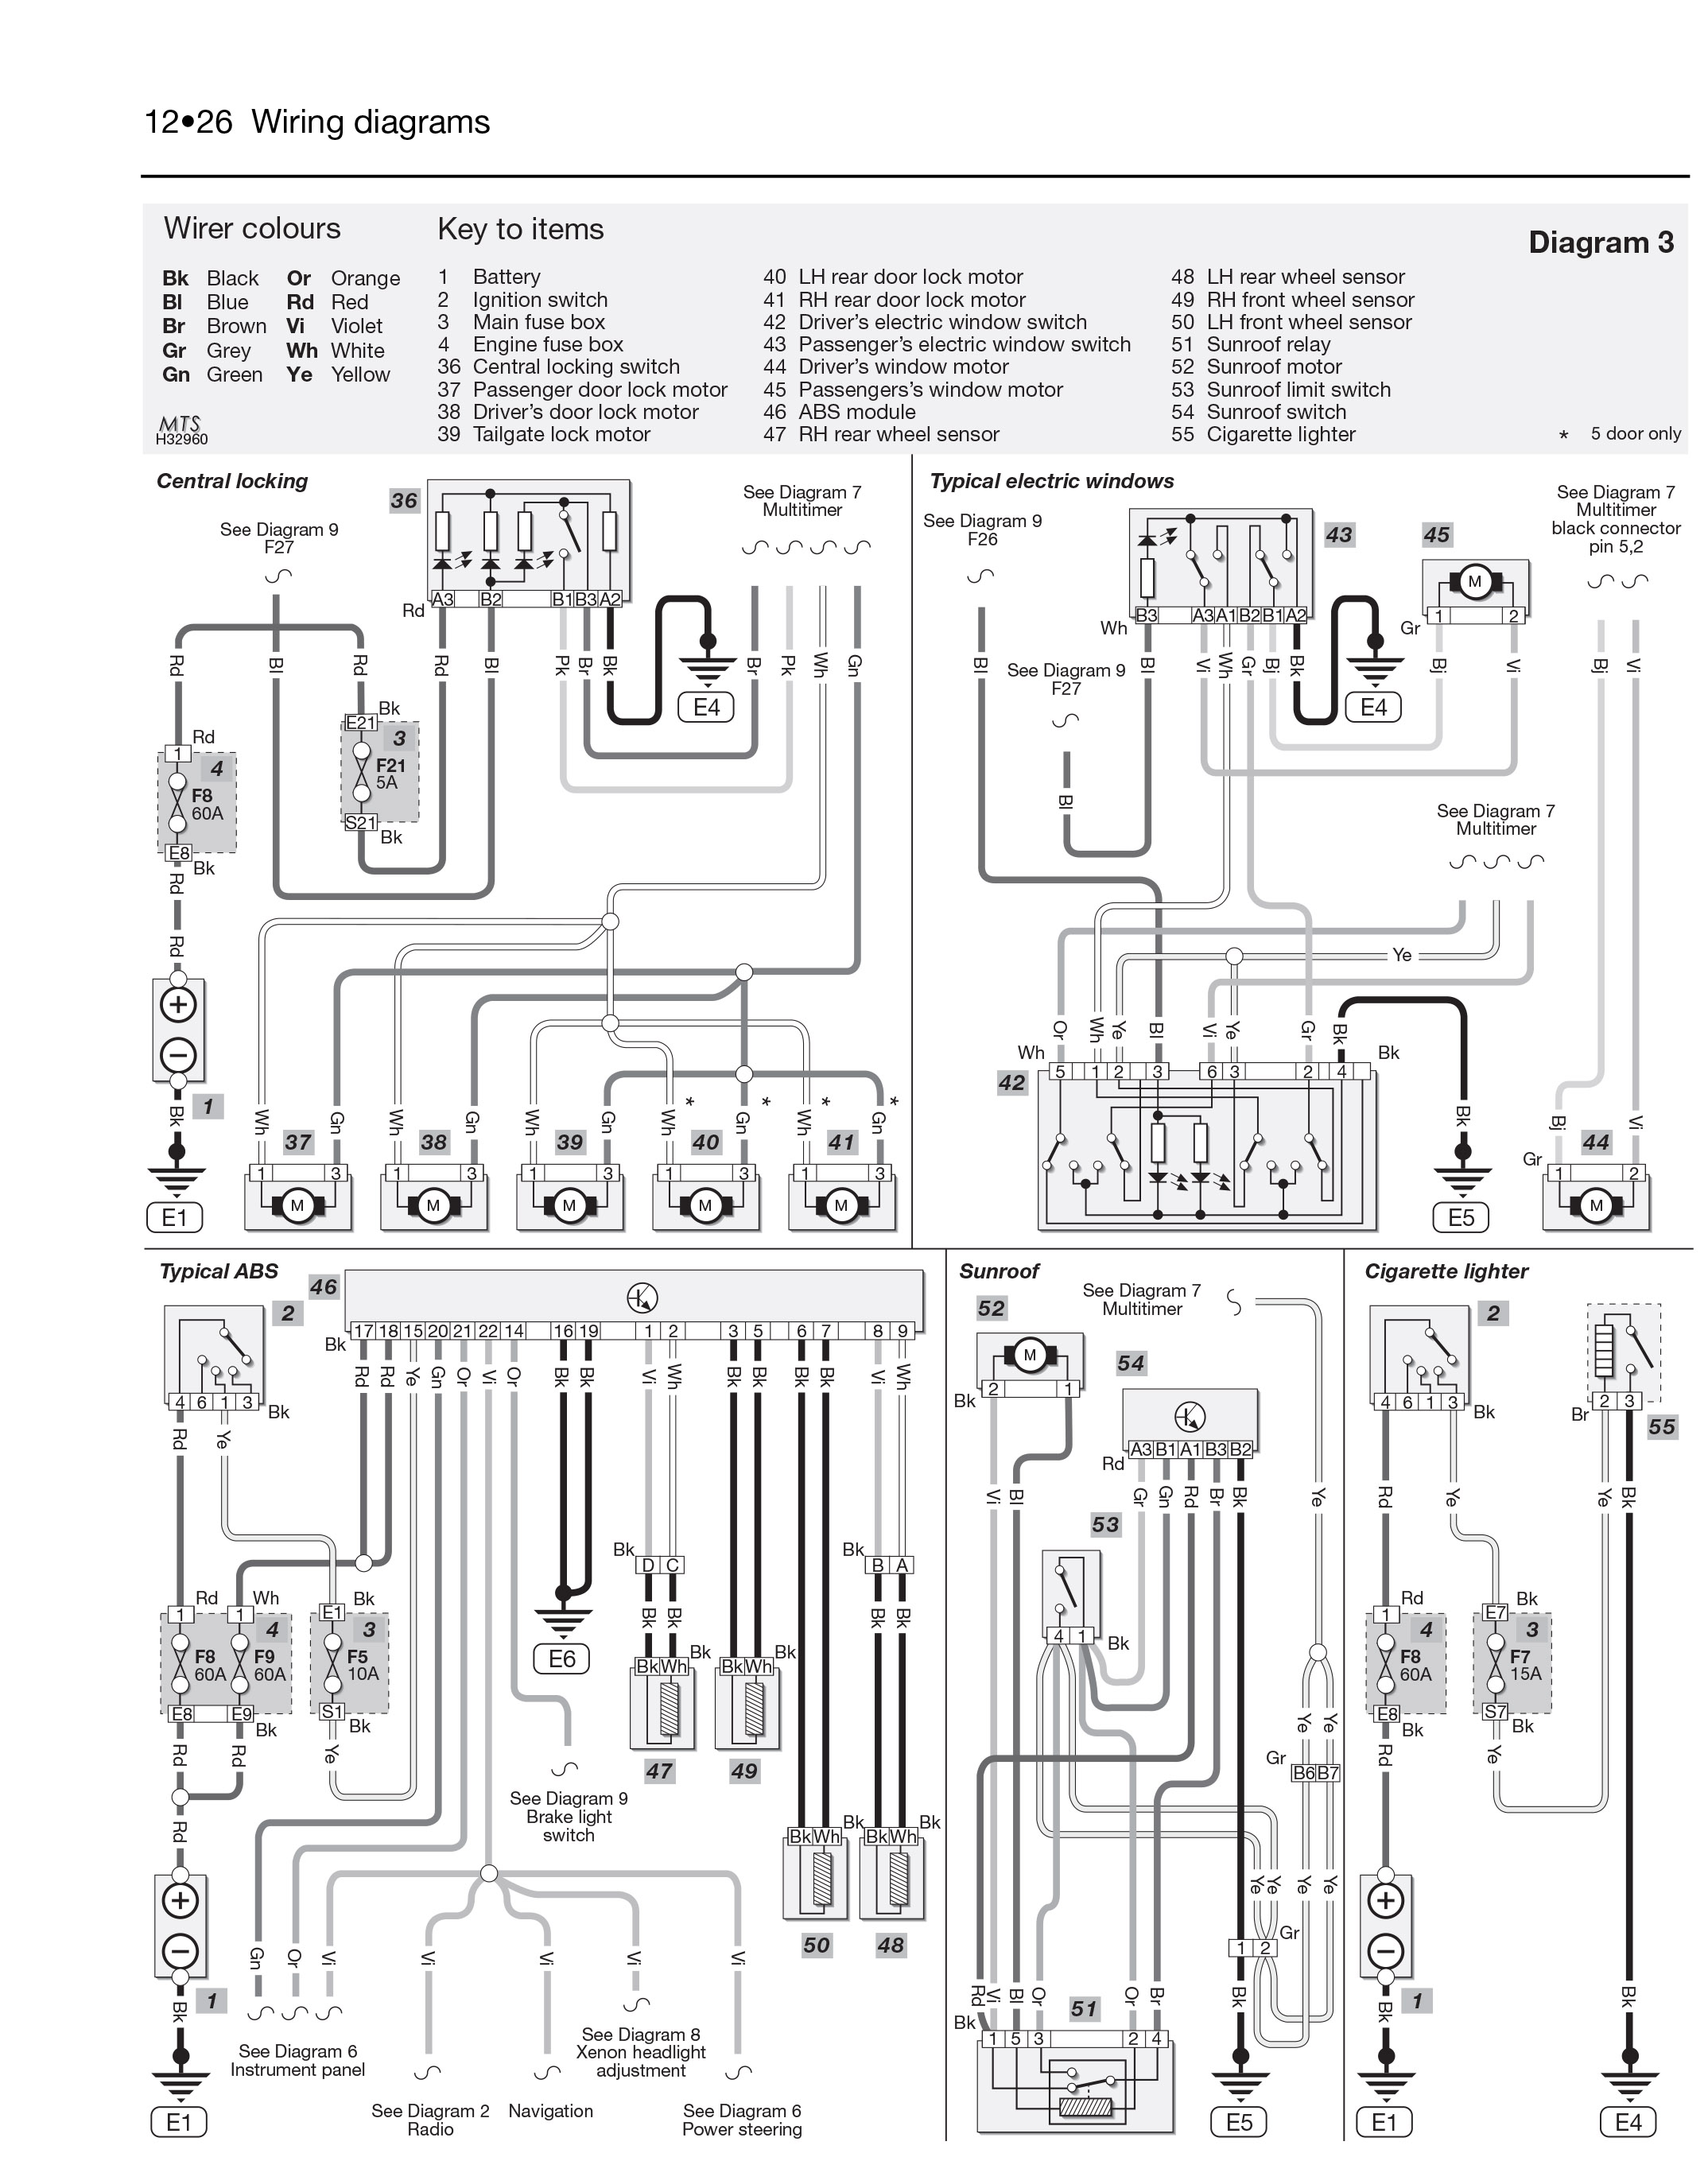 renault clio fuse box guide detailed schematics diagram renault megane 2007 renault clio petrol & diesel (jun 01 05) haynes repair manual renault kangoo renault clio fuse box guide